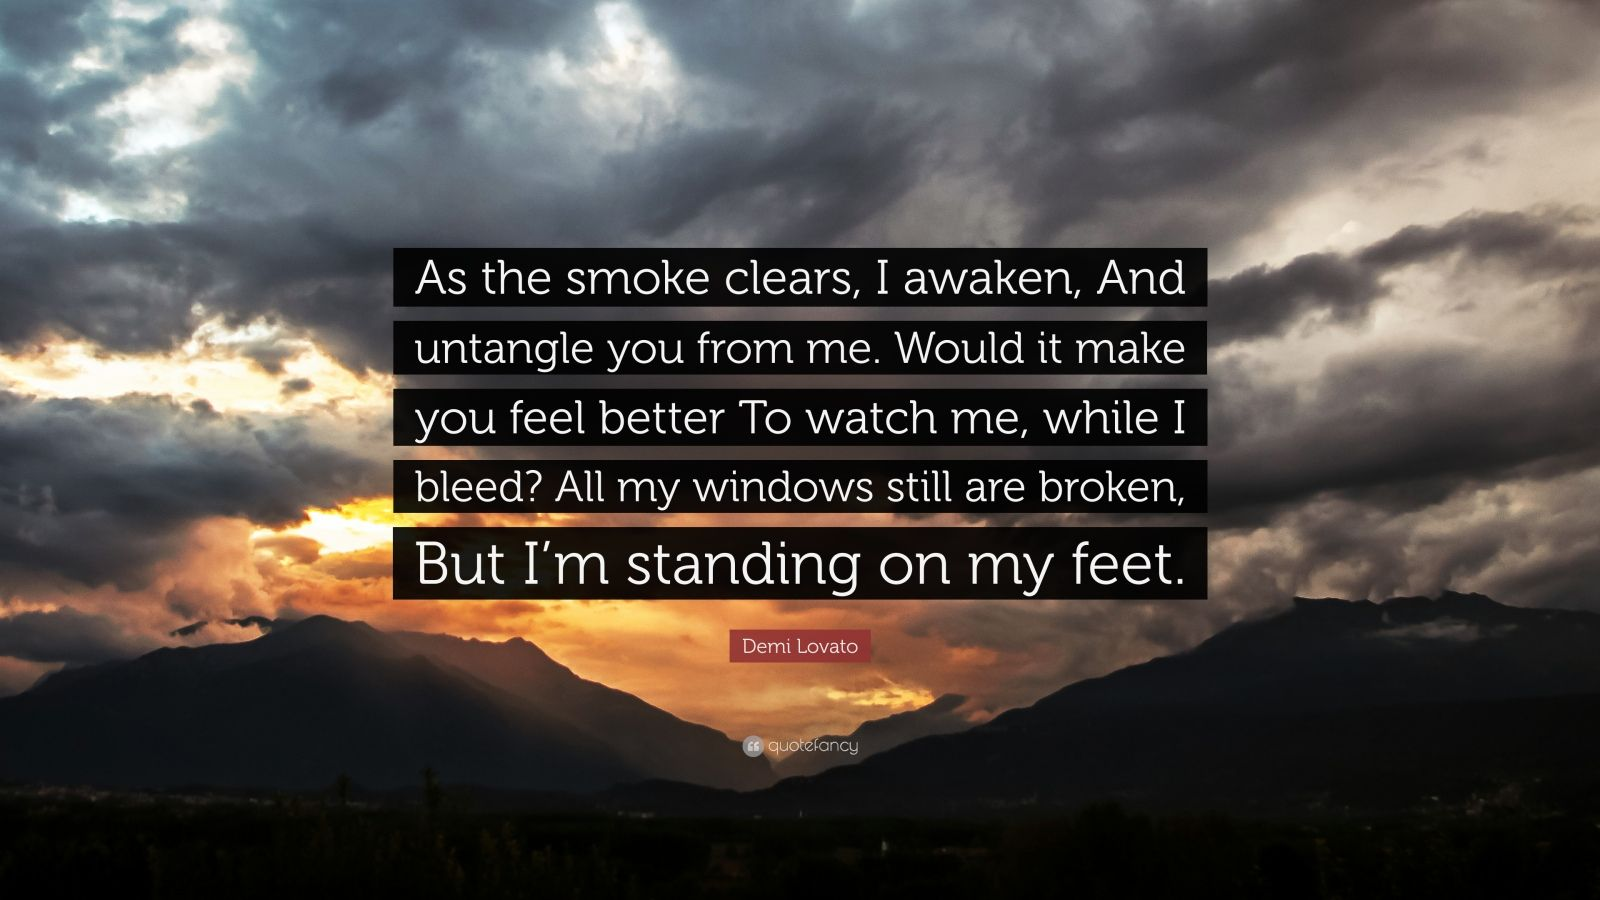 """Demi Lovato Quote: """"As the smoke clears, I awaken, And untangle you from me. Would it make you feel better To watch me, while I bleed? All my windows still are broken, But I'm standing on my feet."""""""